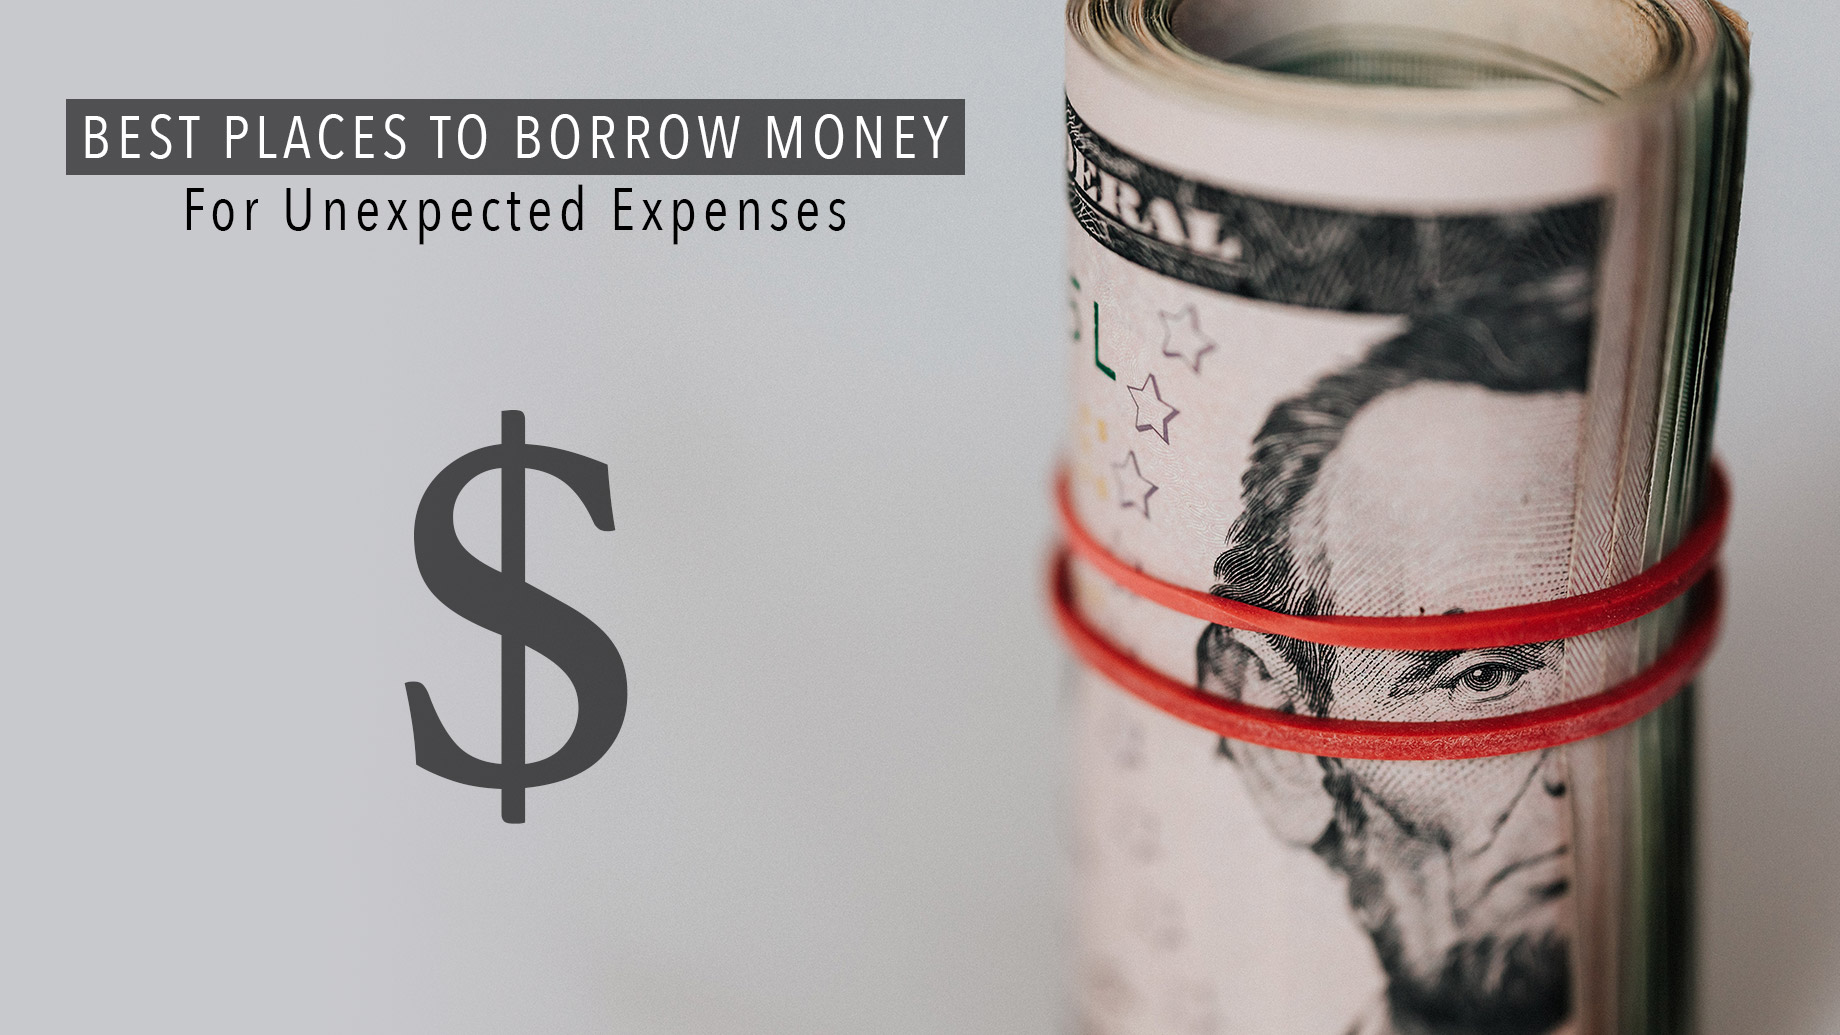 Best Places To Borrow Money For Unexpected Expenses